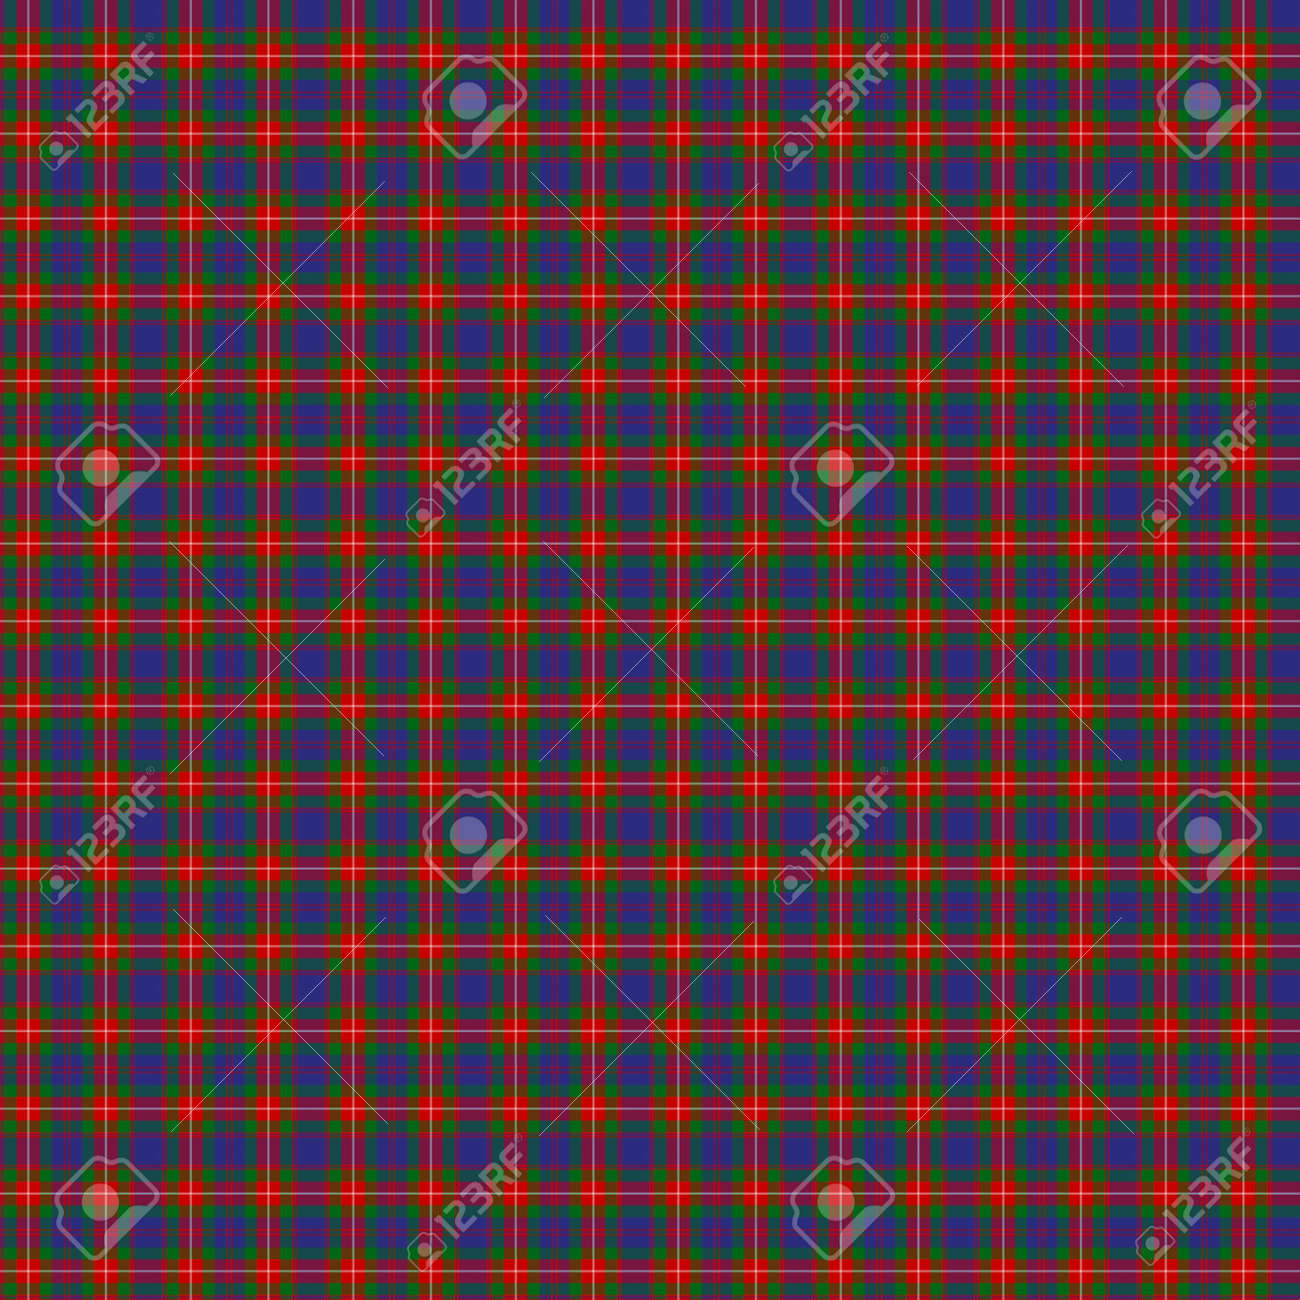 A seamless patterned tile of the clan Fraser of Lovat tartan